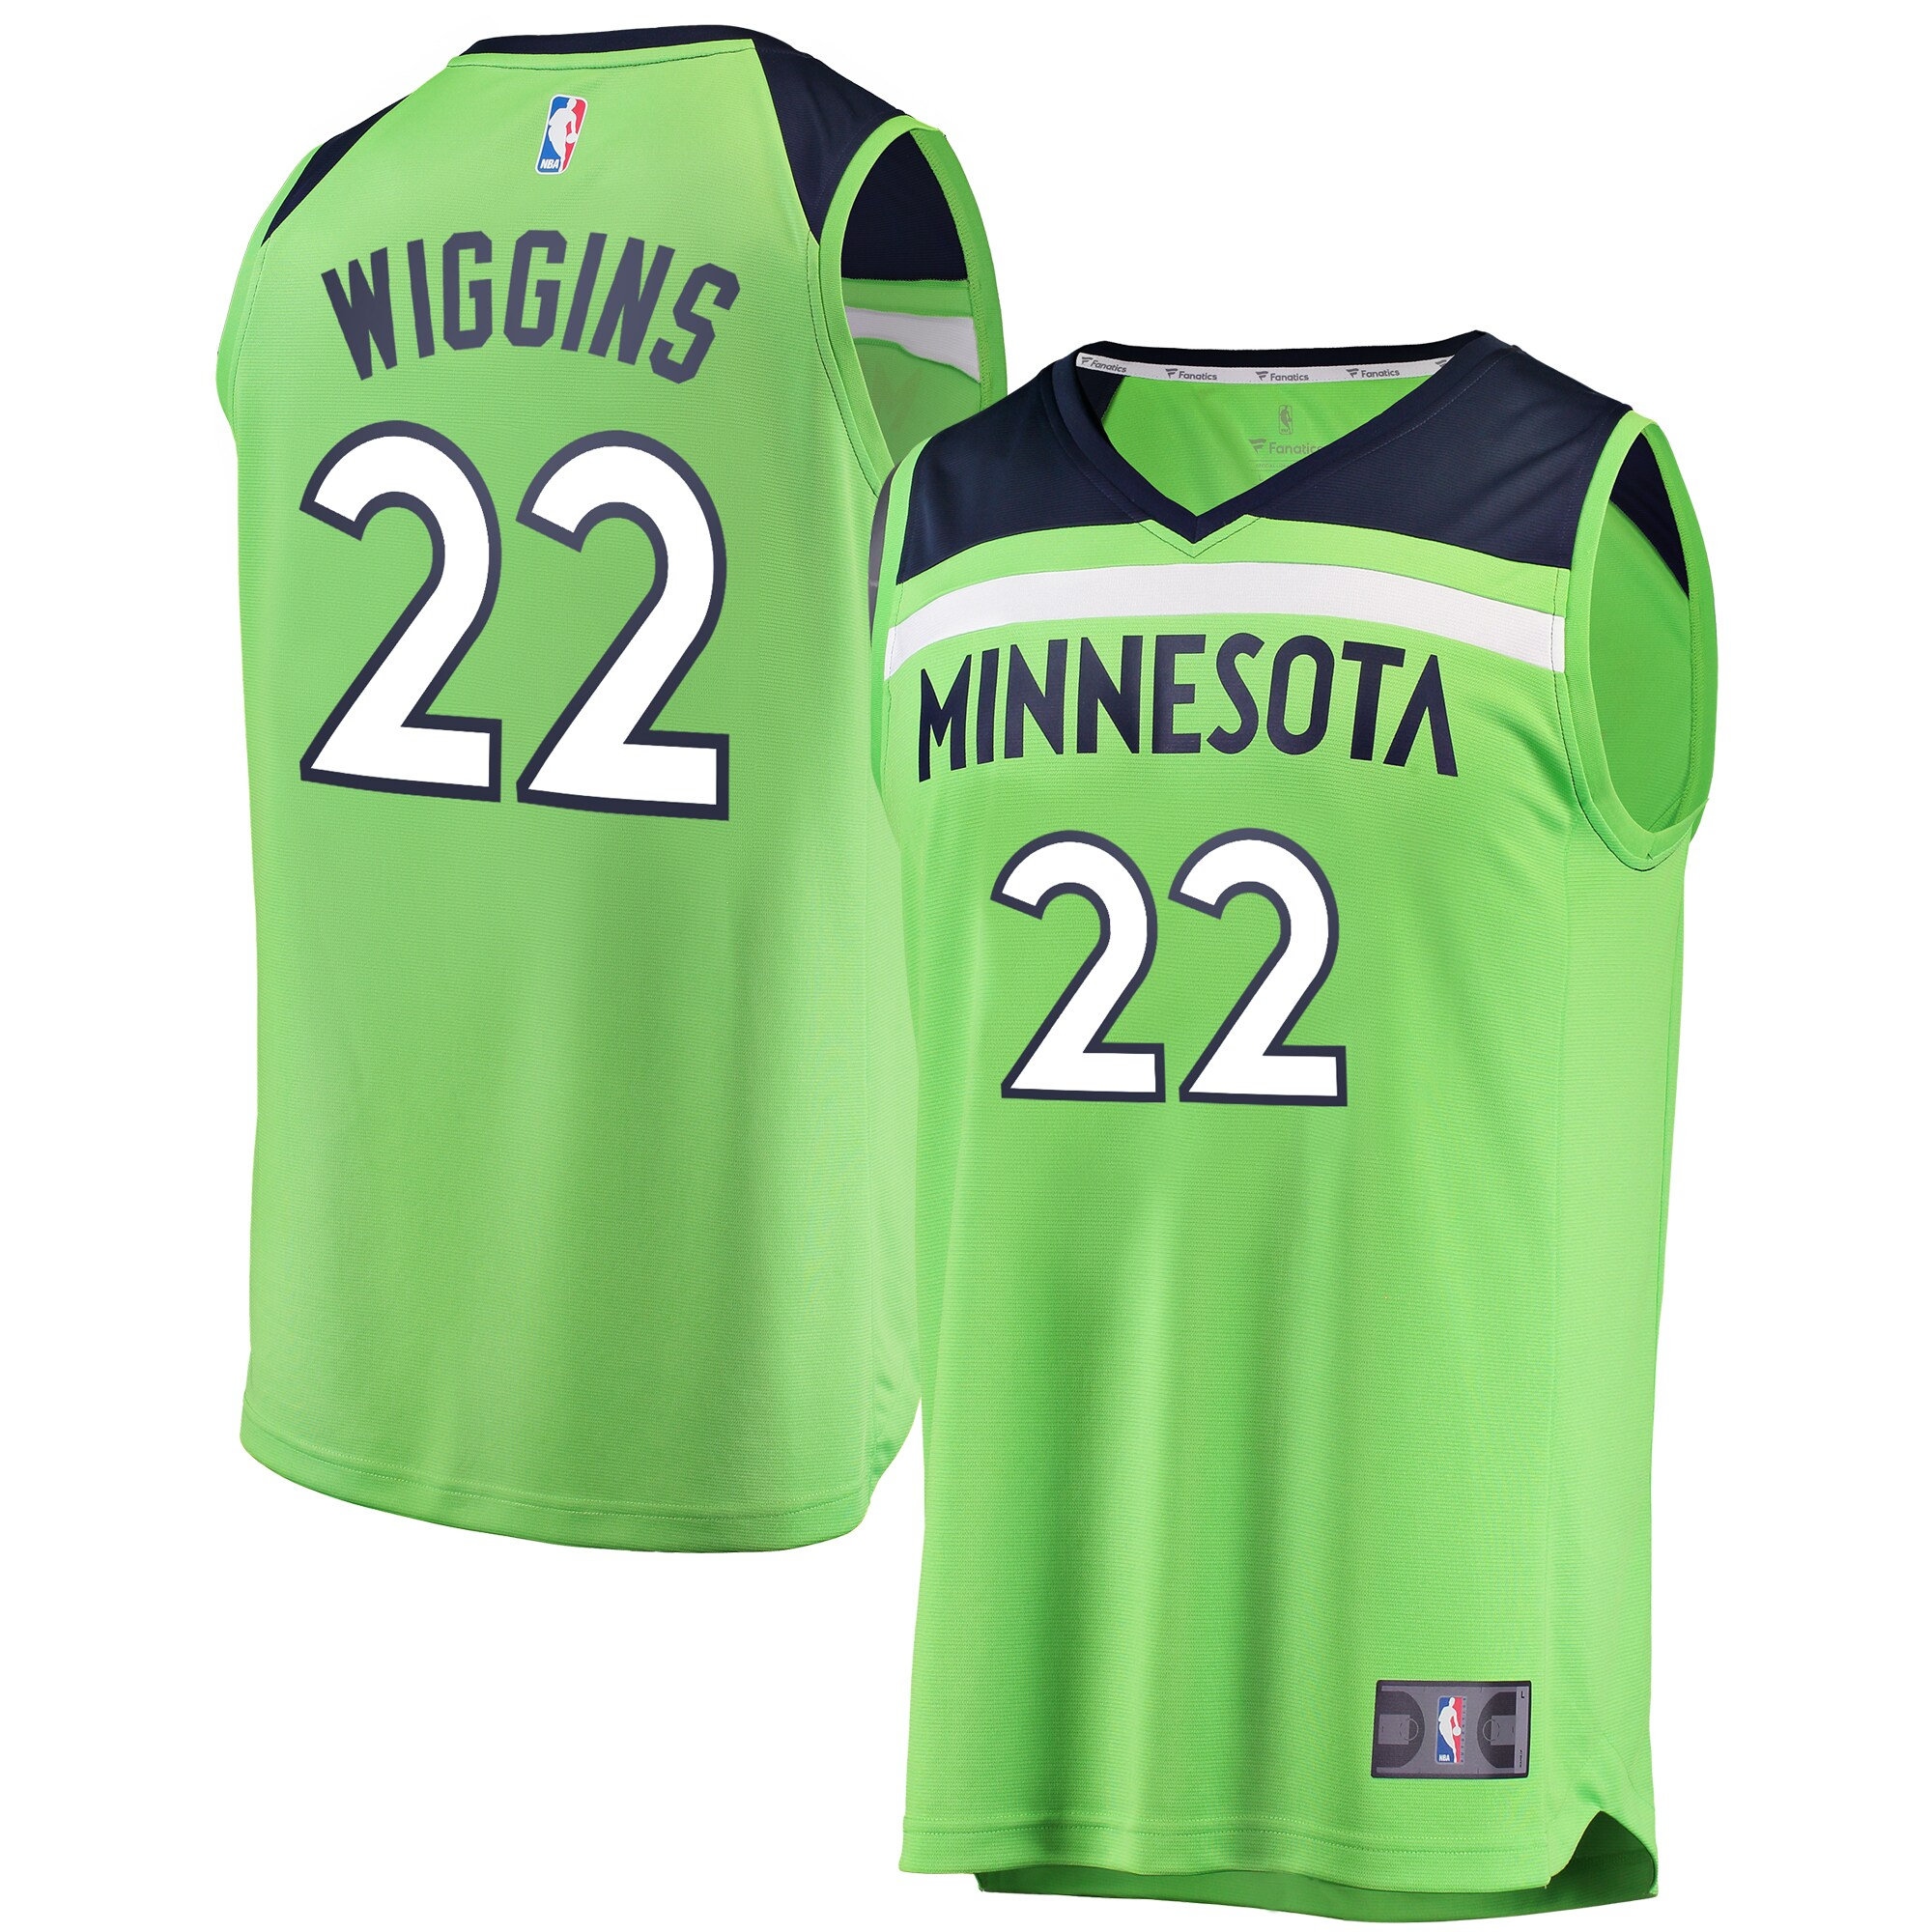 Andrew Wiggins Minnesota Timberwolves Fanatics Branded Fast Break Replica Jersey Neon Green - Statement Edition